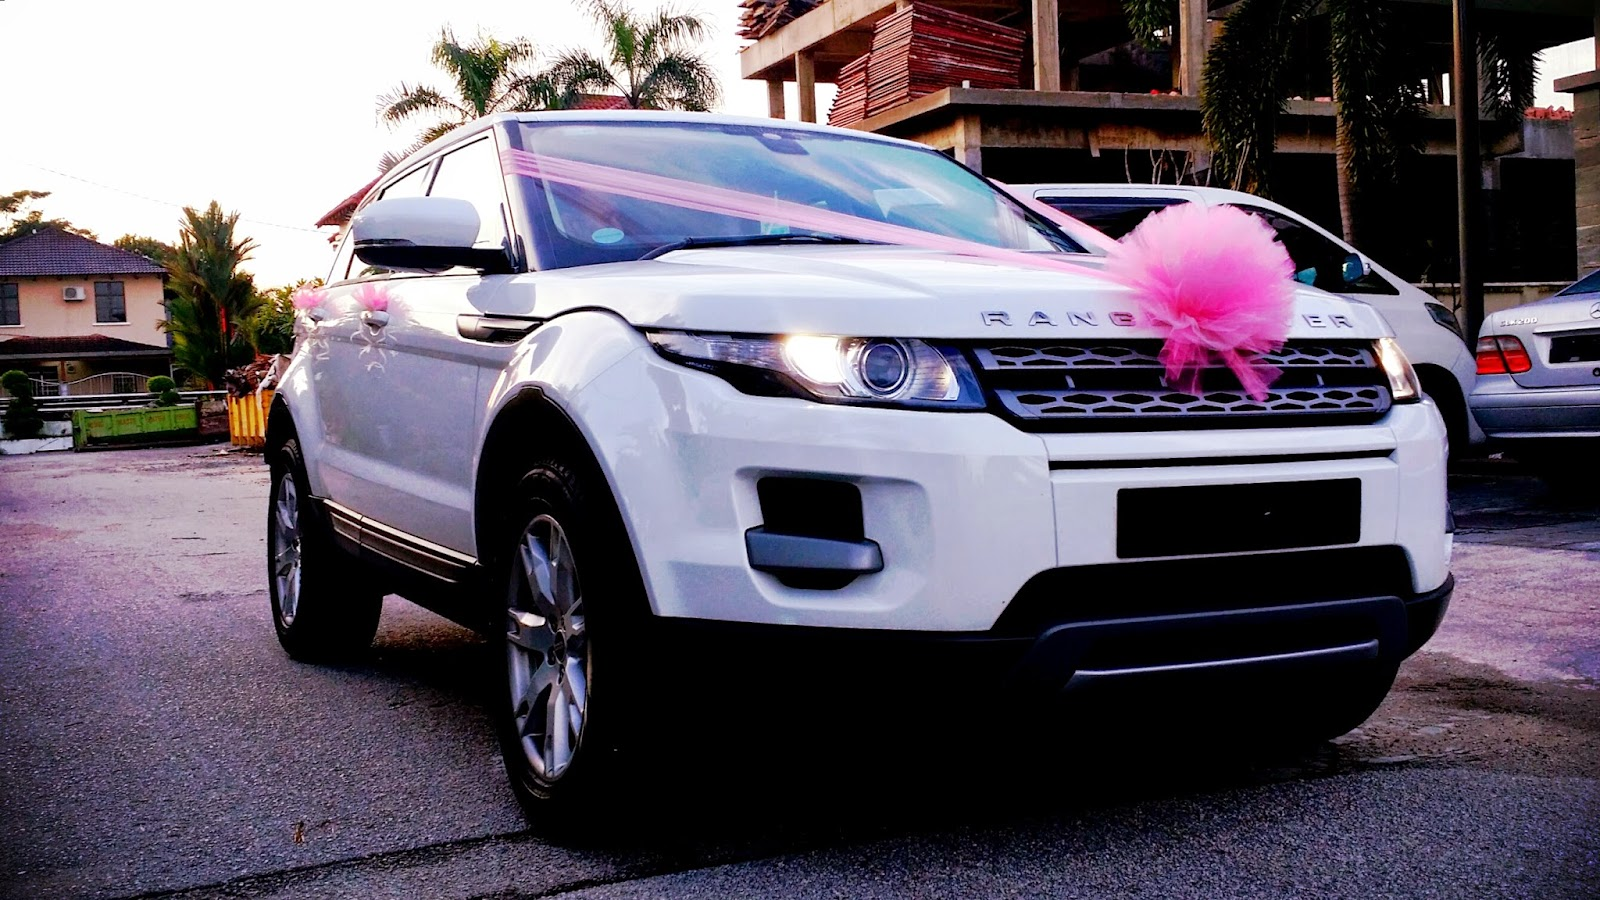 RedOrca Malaysia Wedding and Event Car Rental Bridal Car